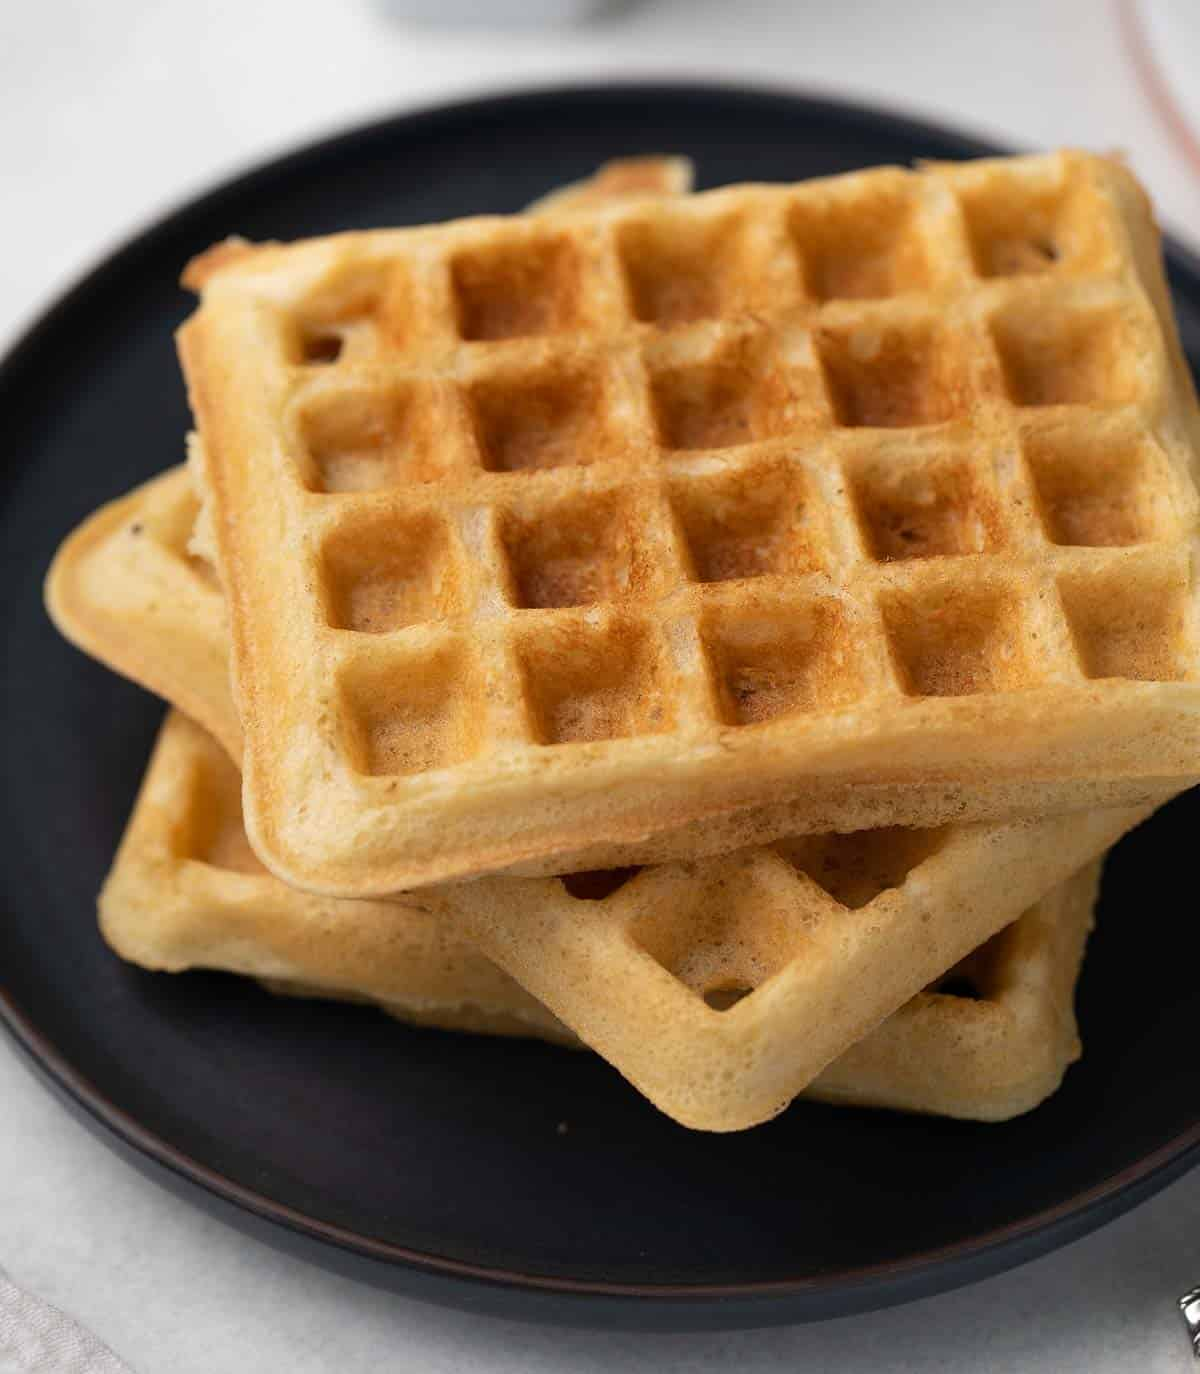 waffles stacked on black plate before serving